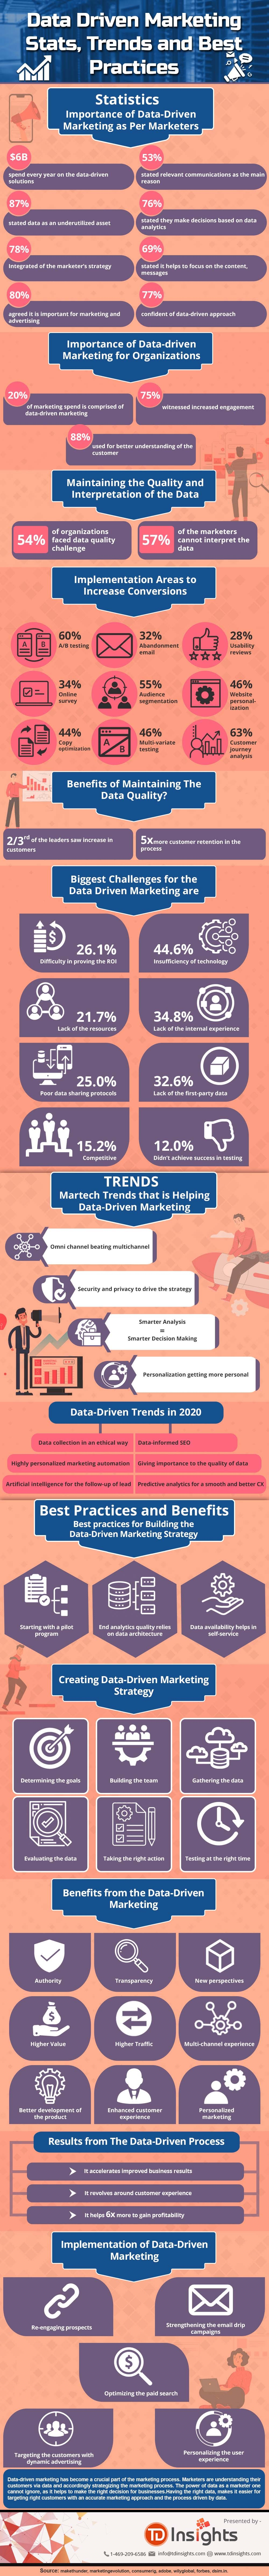 Data Driven Marketing: Stats, Trends and Best Practices #infographic #Marketing